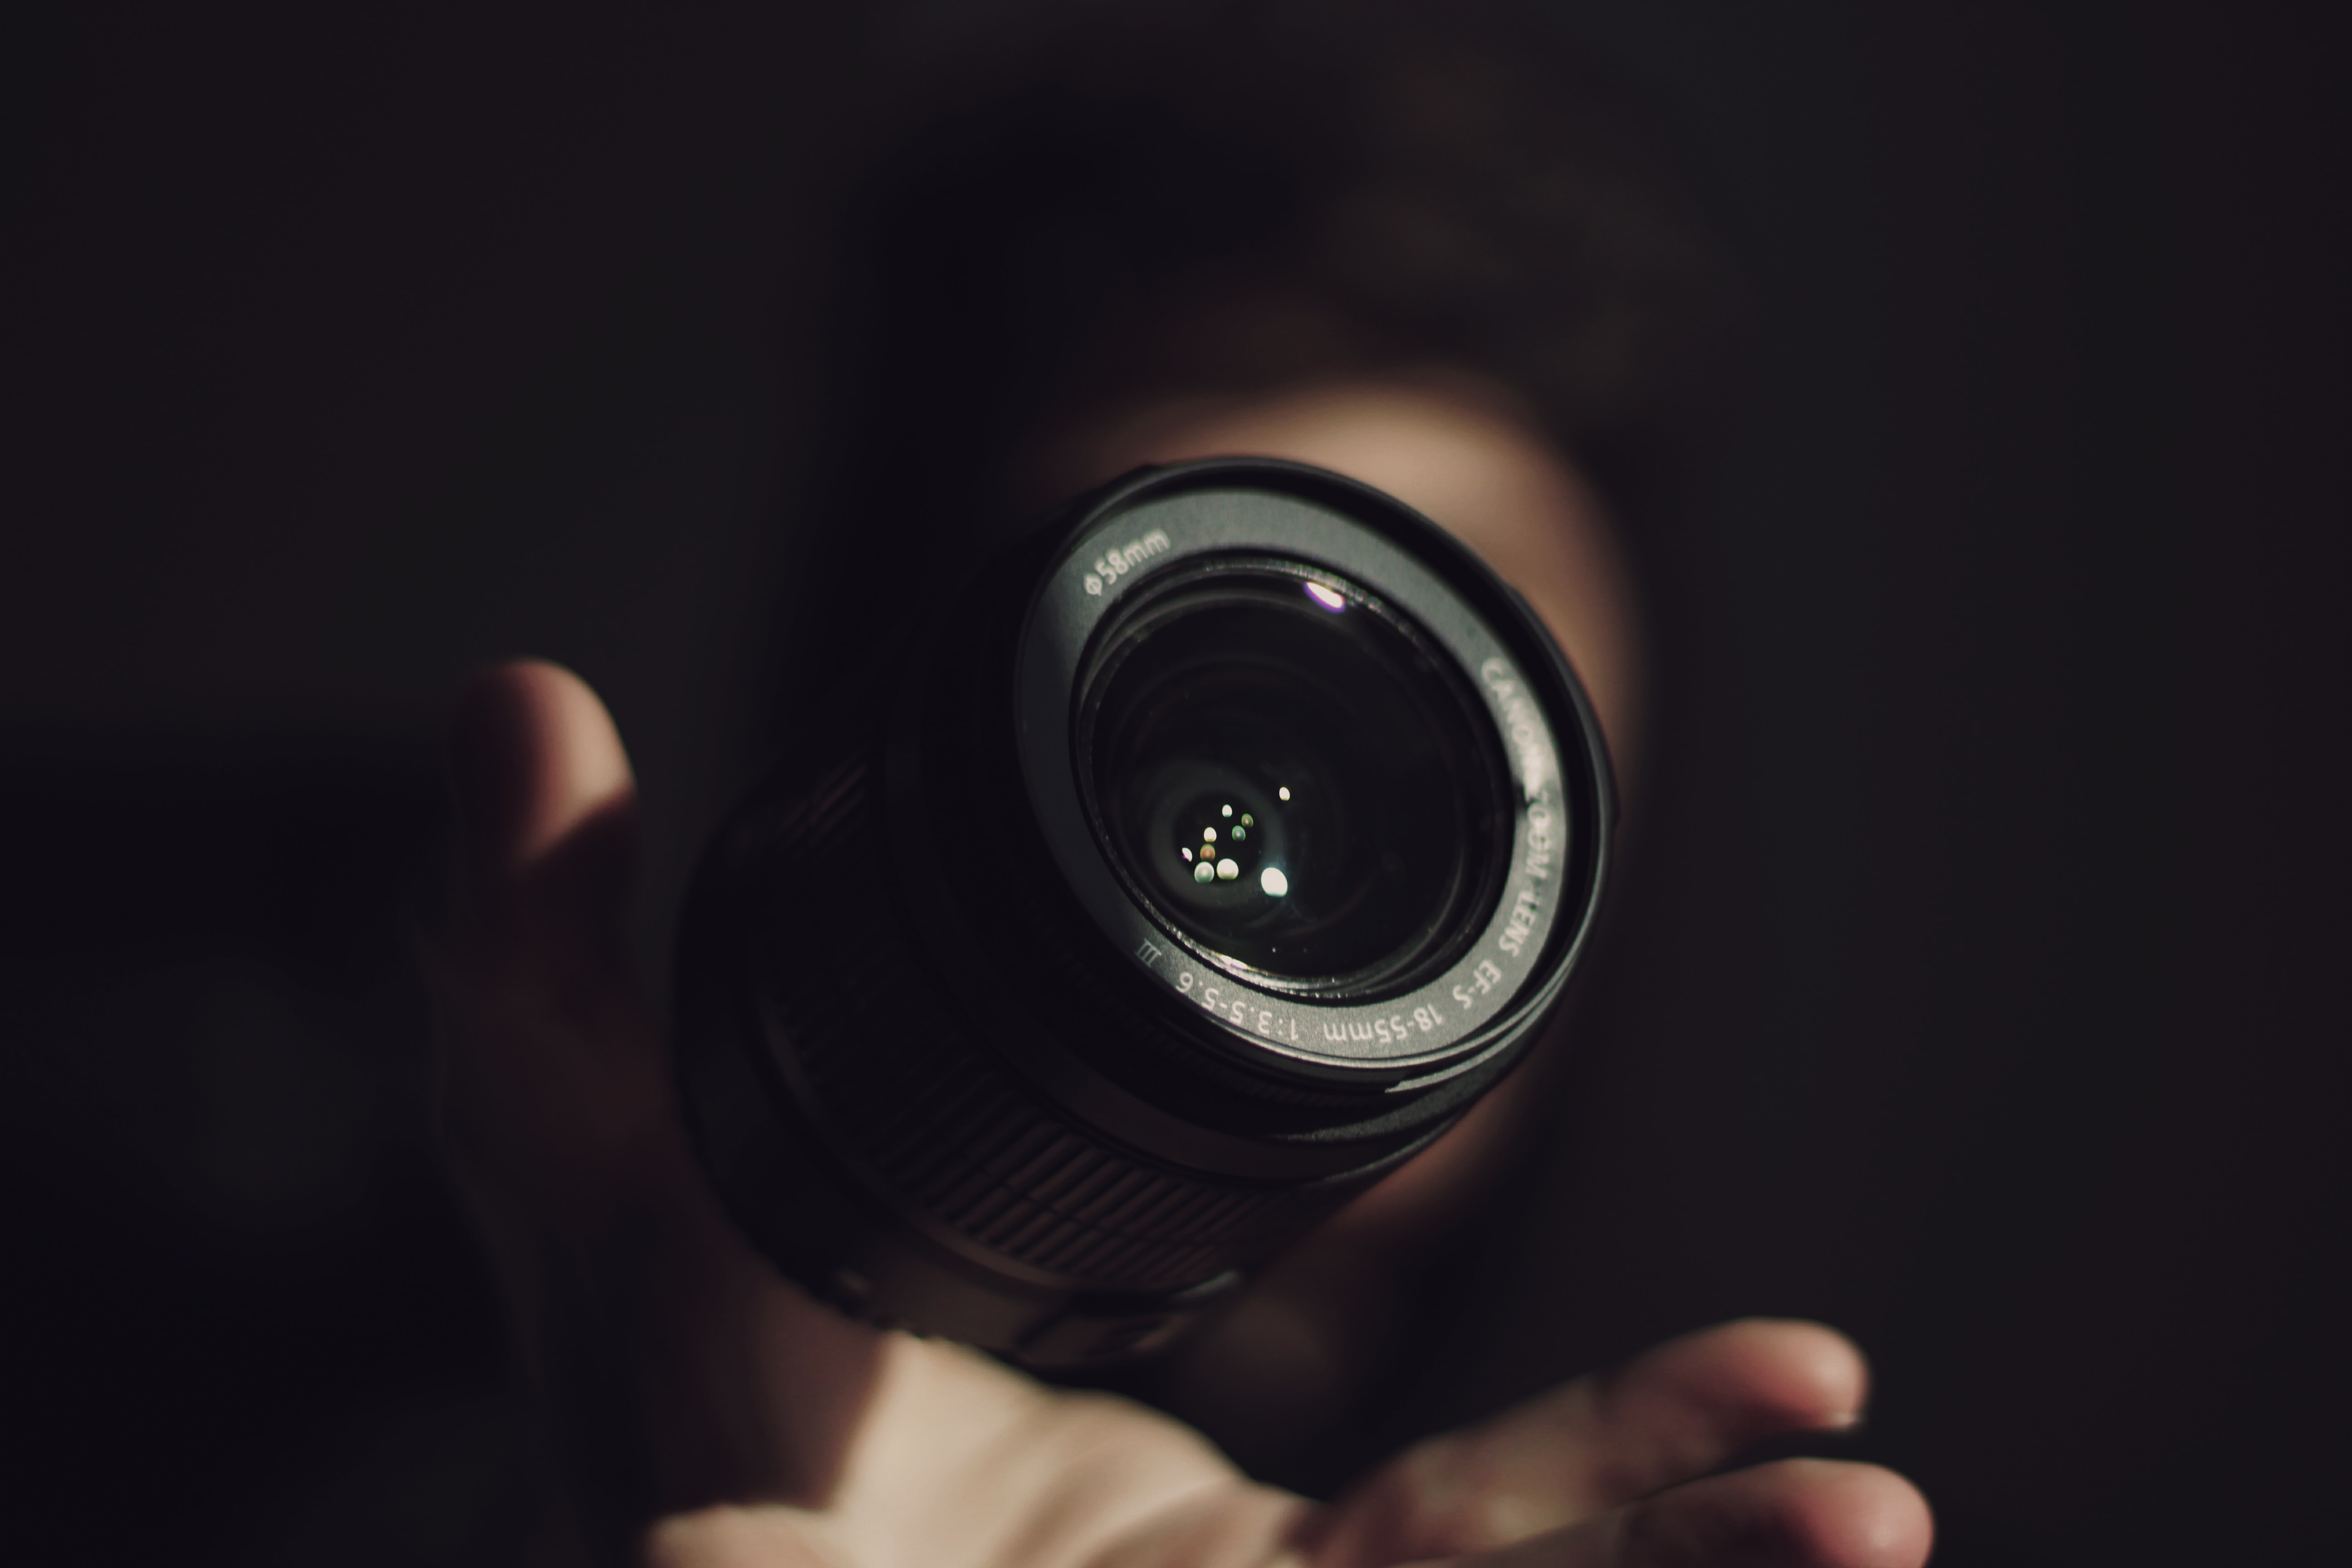 58mm Canon DSLR camera floating over a person's hand